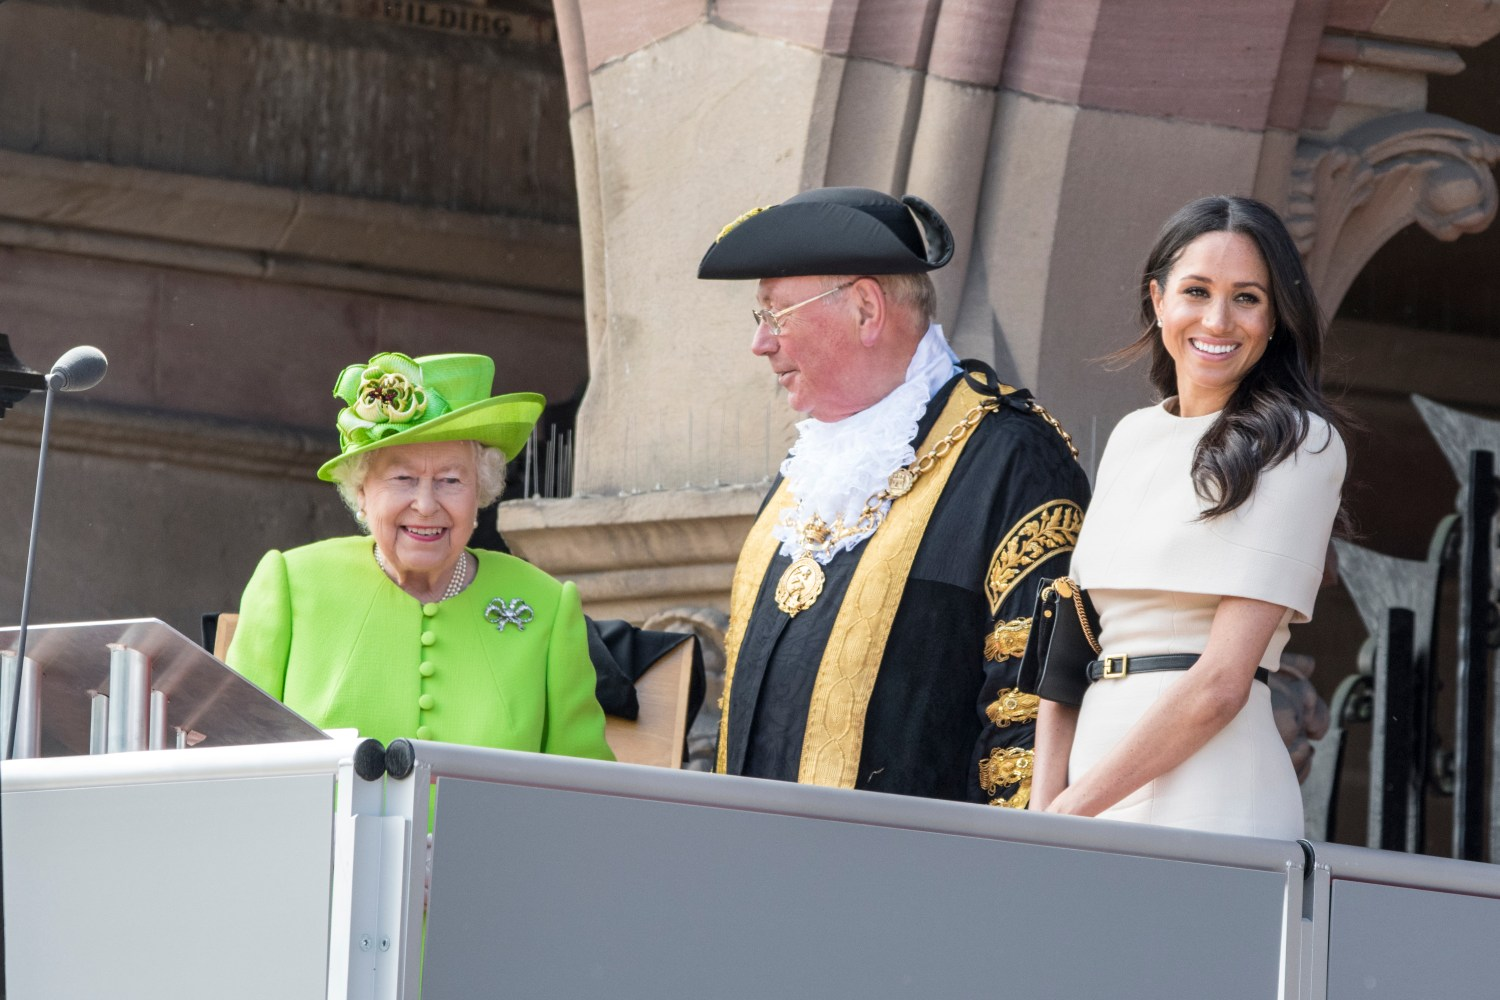 The Queen has agreed to allow The Duke and Duchess of Sussex to set up their own household. They are pictured on the Town Hall balcony during their visit to Chester (Benjamin Wareing)